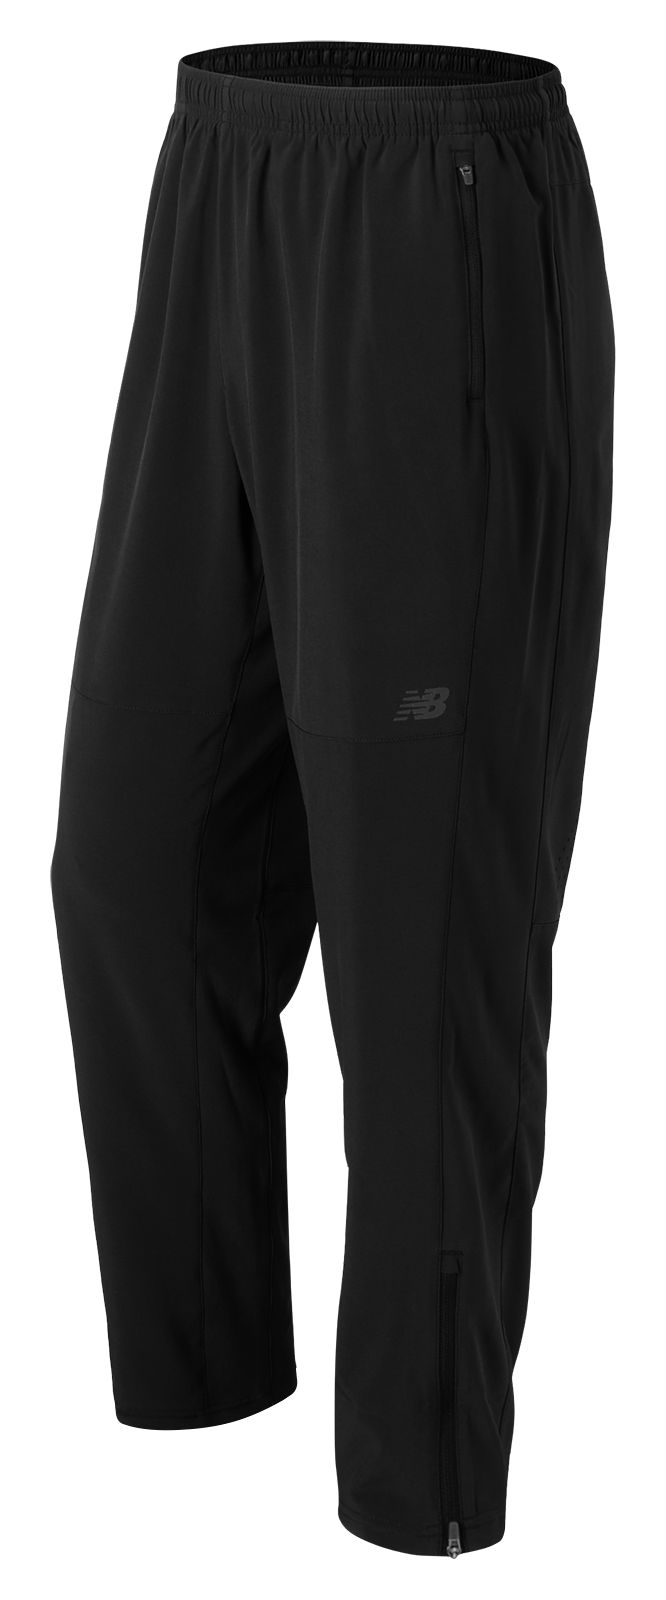 New Balance : Windcheater Pant : Men's Apparel Outlet : MP53041BK